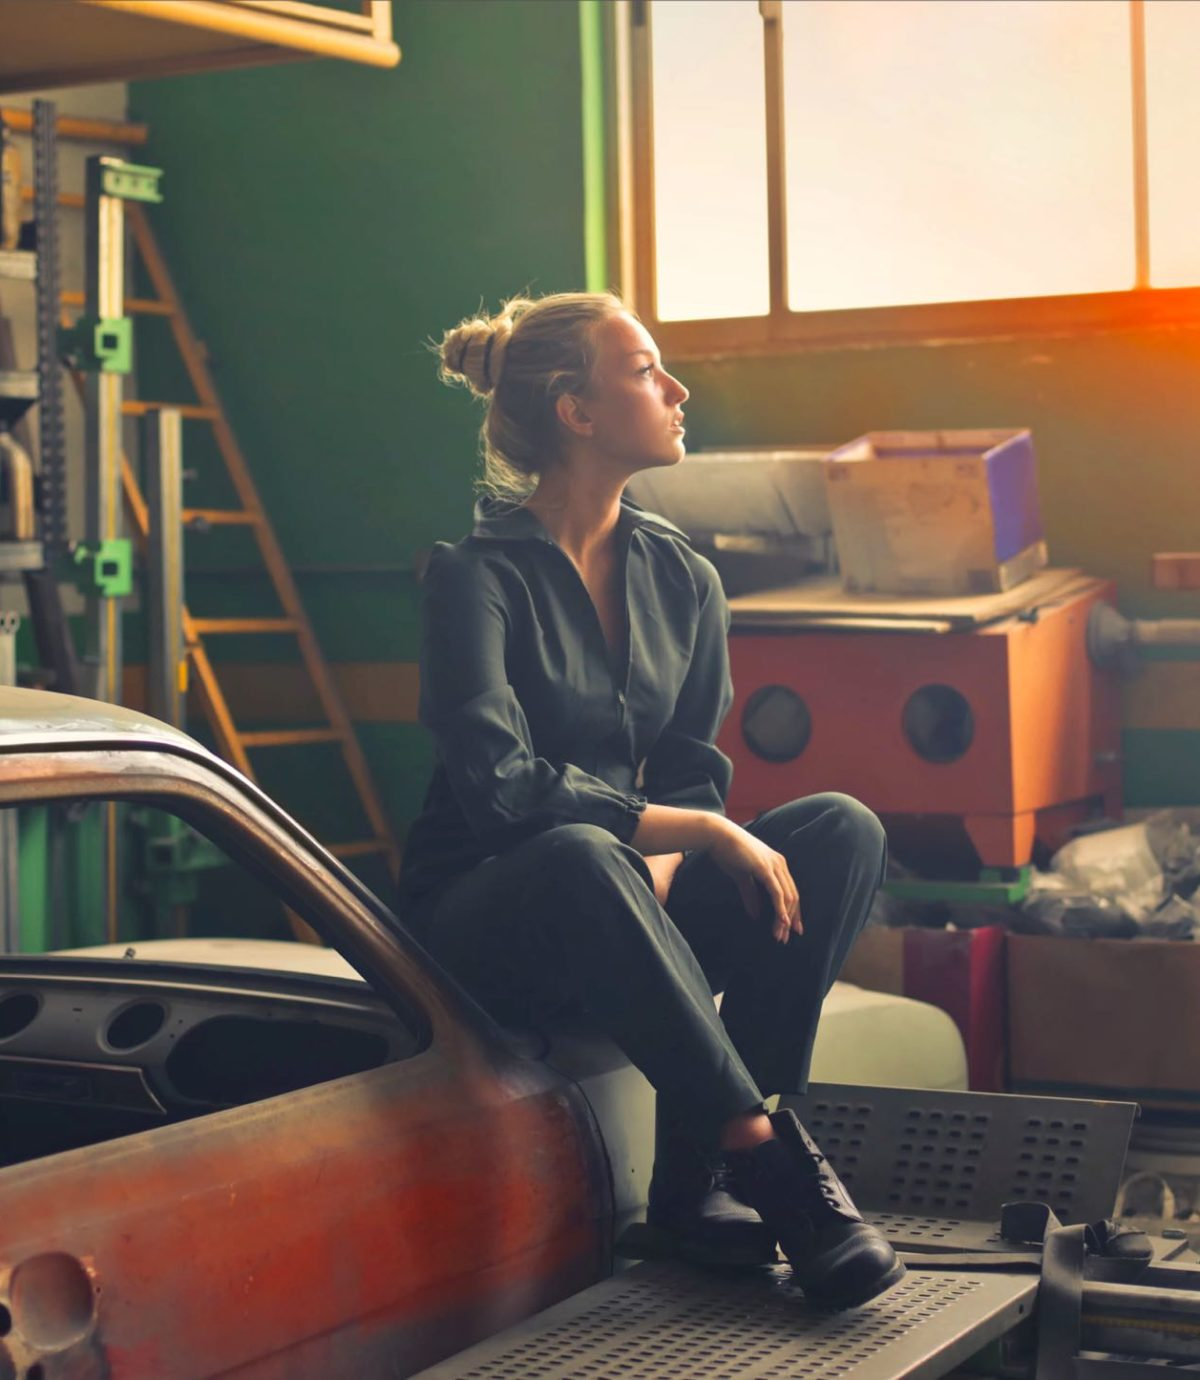 an woman in a garage